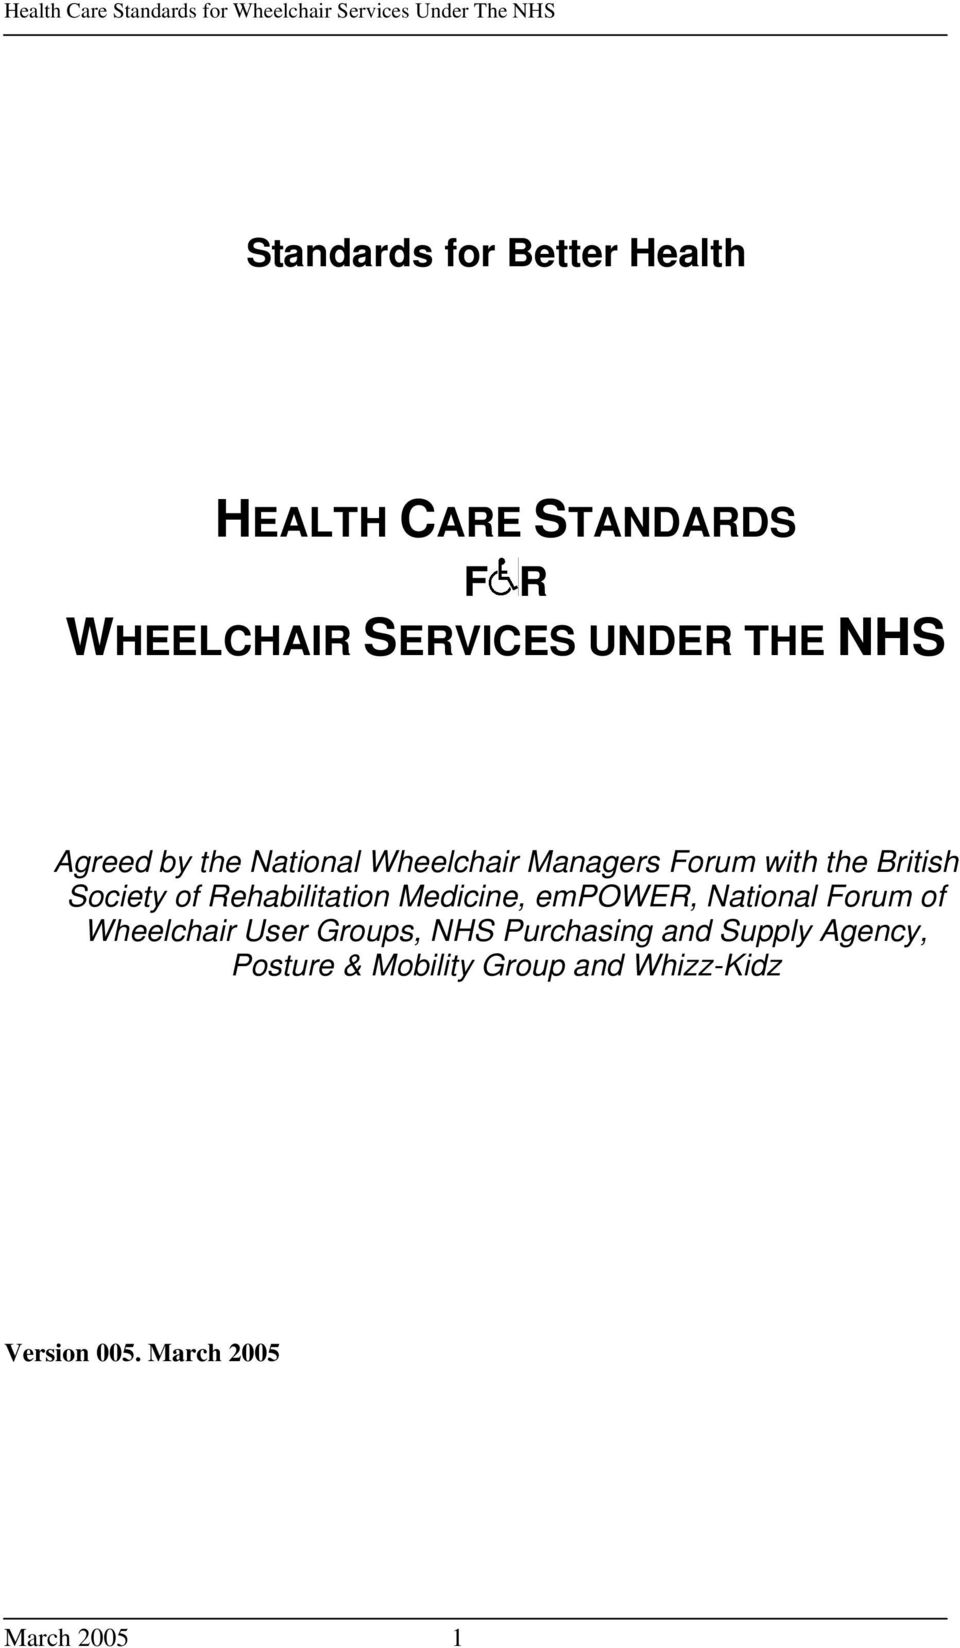 Rehabilitation Medicine, empower, National Forum of Wheelchair User Groups, NHS